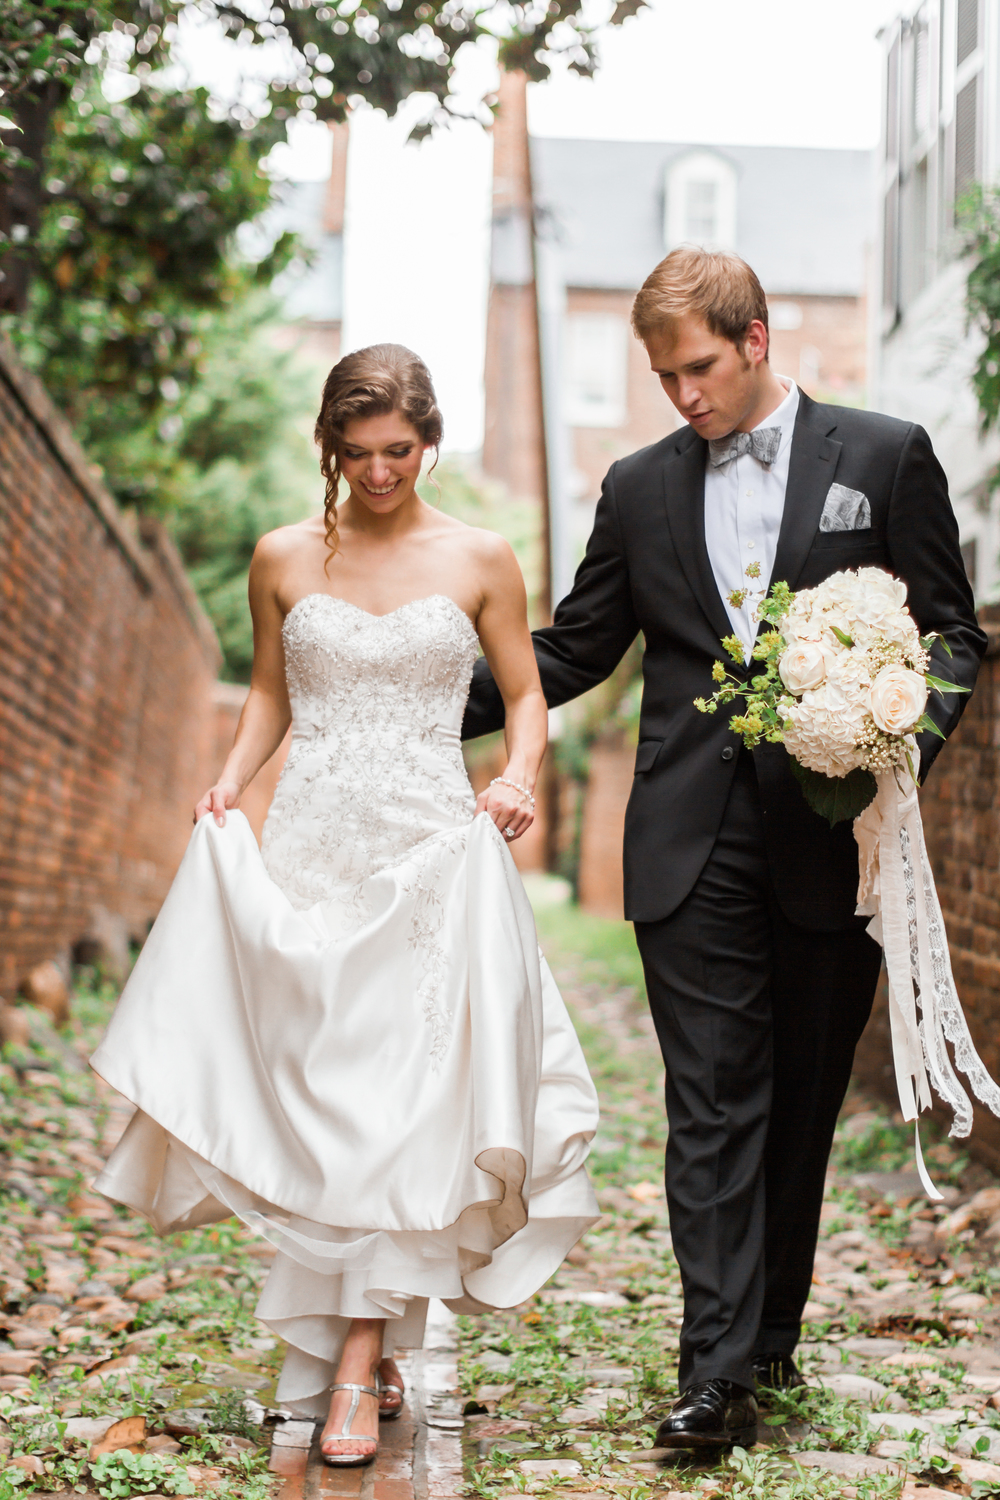 Old Town Alexandria Styled Wedding Shoot-39.jpg